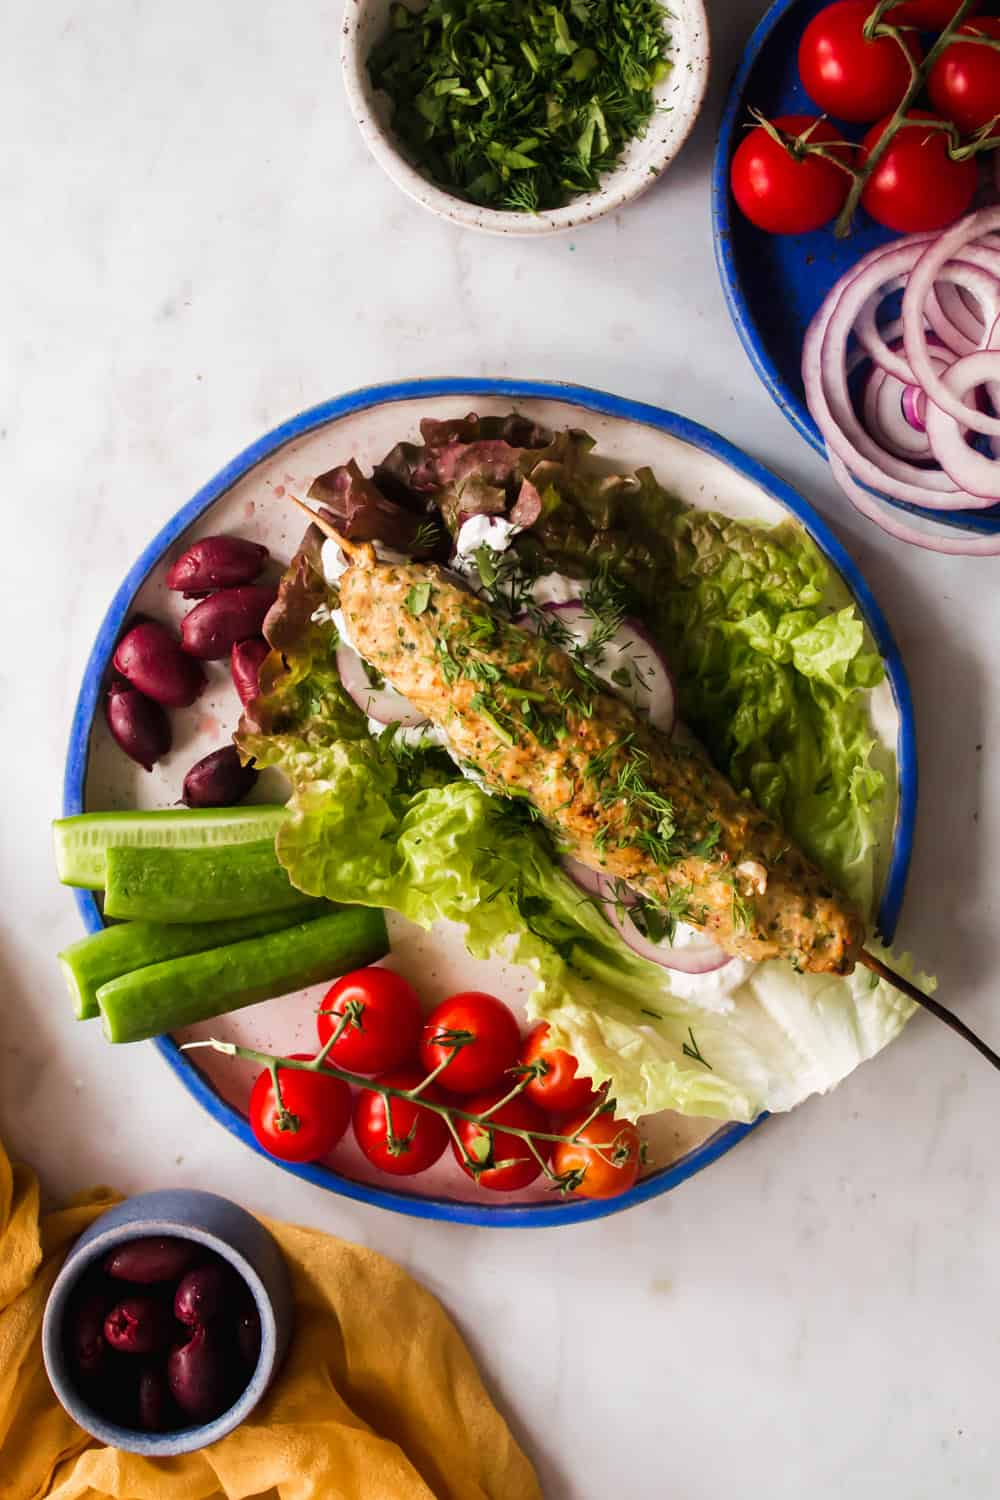 Chicken kebab on a white plate surrounded by lettuce, herbs, and fresh vegetables